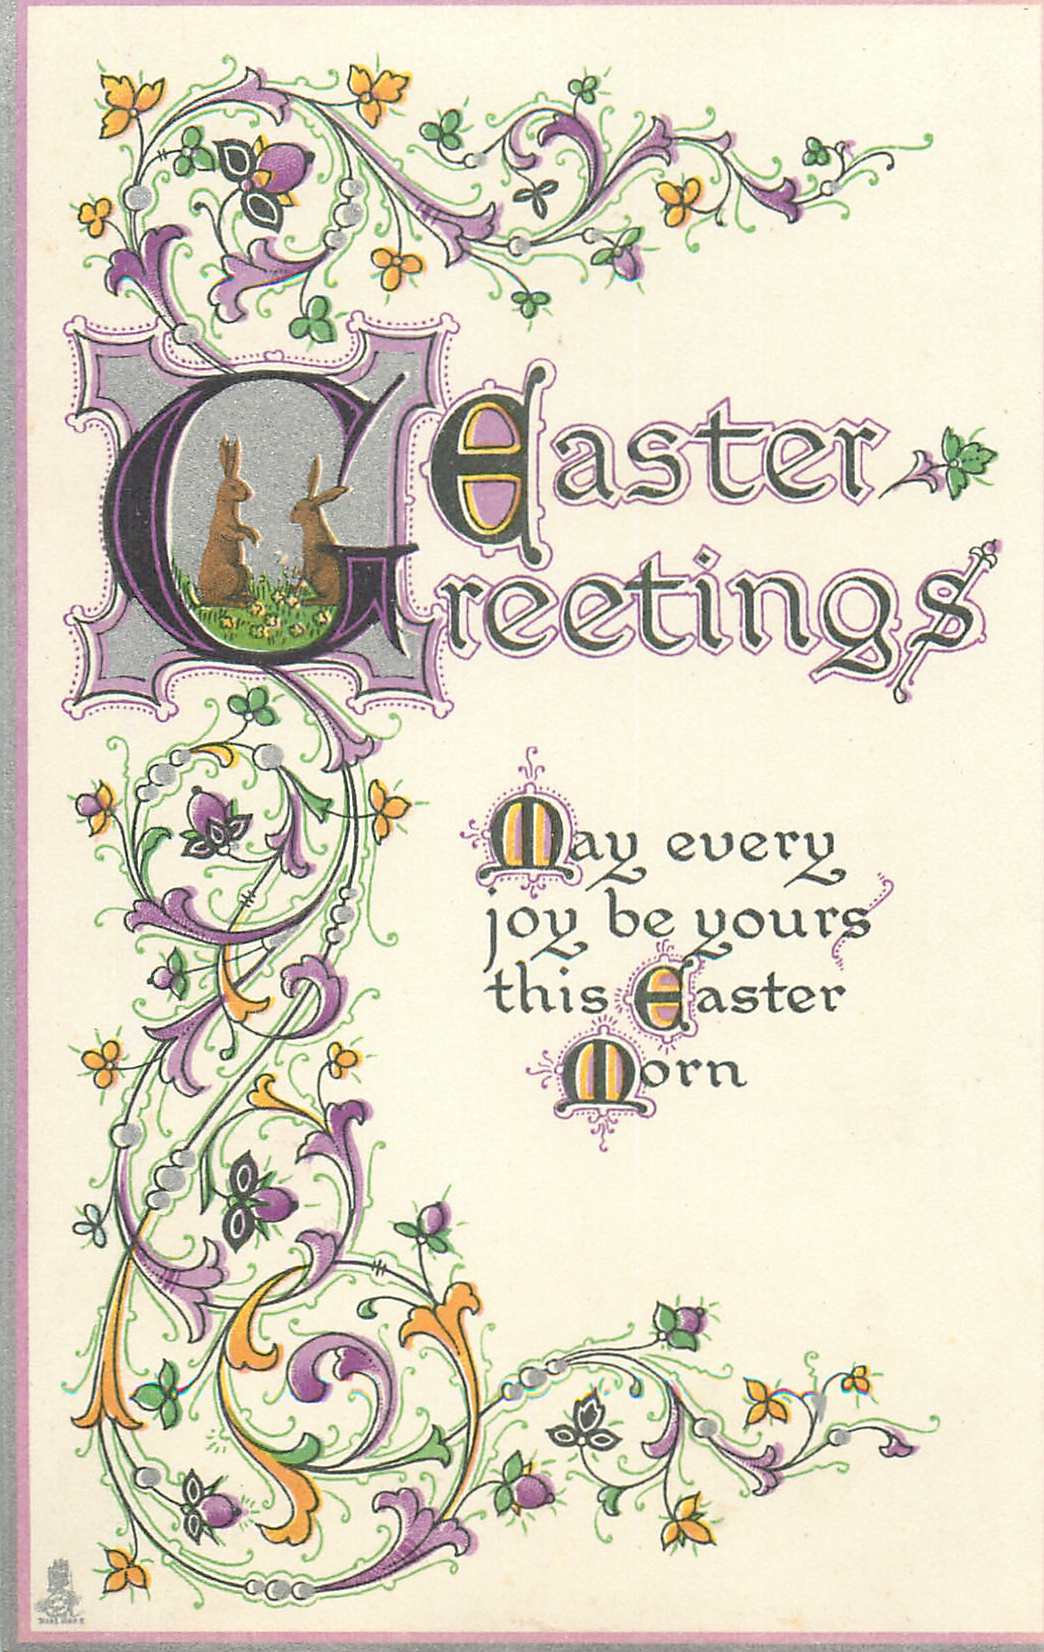 Easter Greetings Ornate Decorations Round The Words Tuckdb Postcards